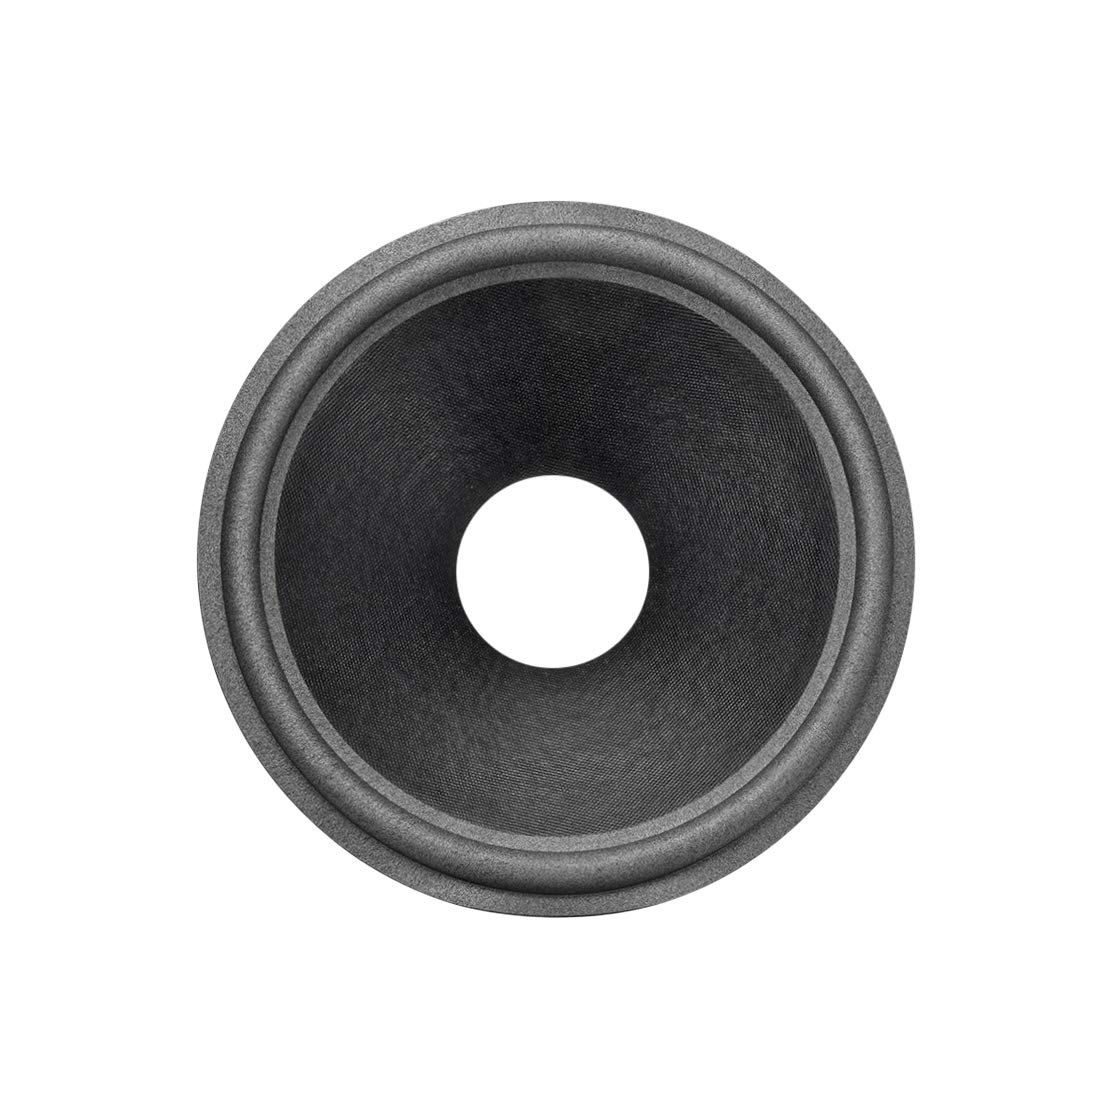 uxcell 10'' Paper Speaker Cone Subwoofer Drum Dot Paper 2.5'' Coil Diameter with Foam Surround